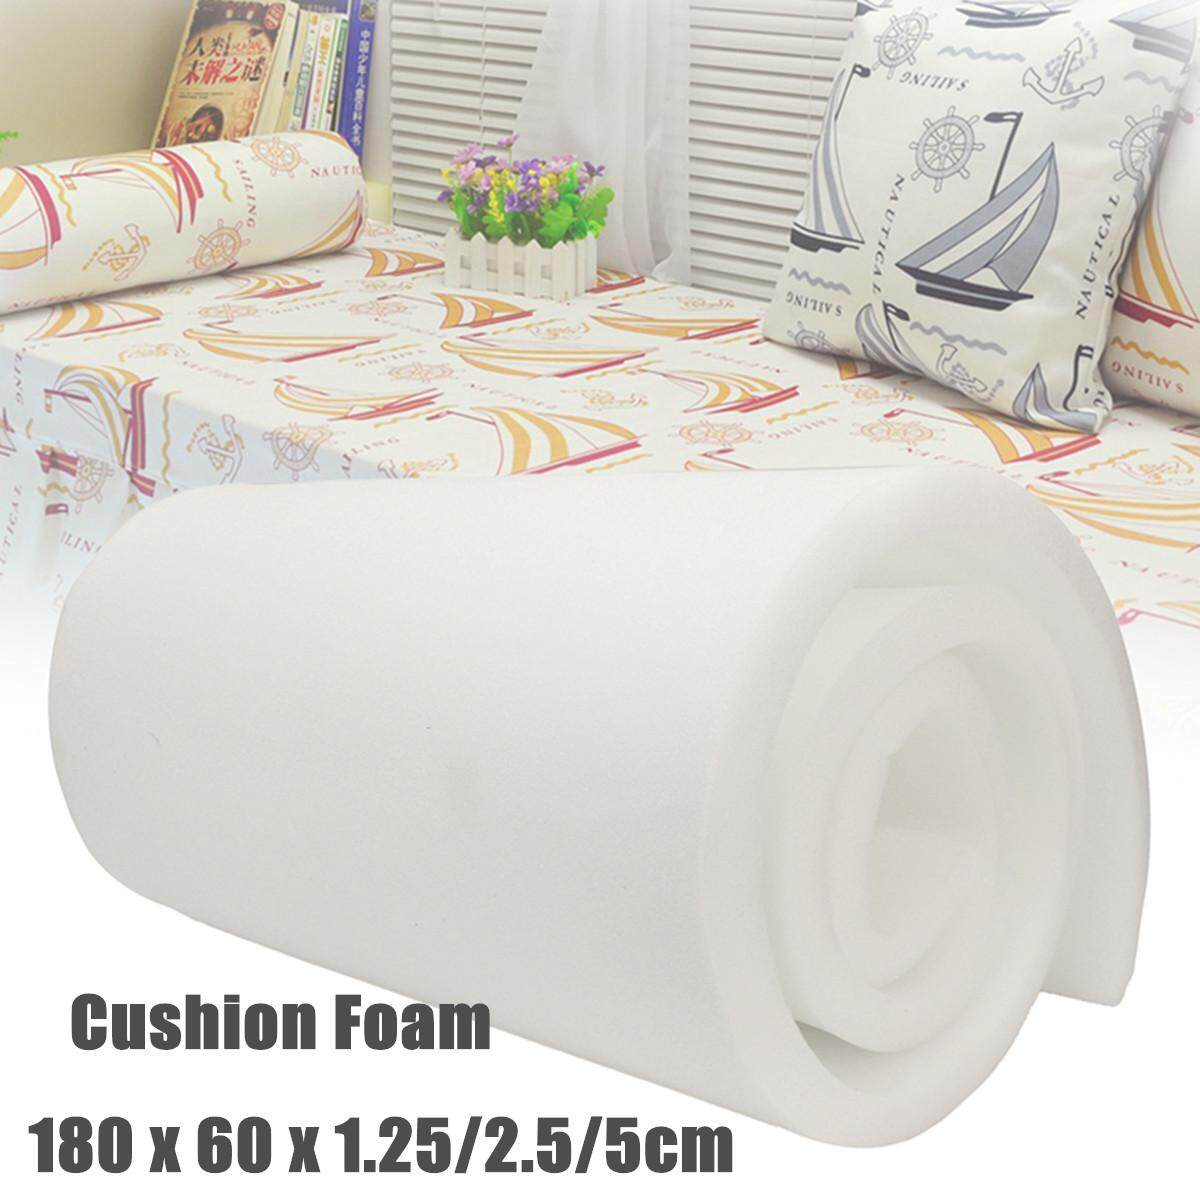 (photo)High Density Upholstery Foam Seat Cushion Replacement - 24 x 72 # 5cm